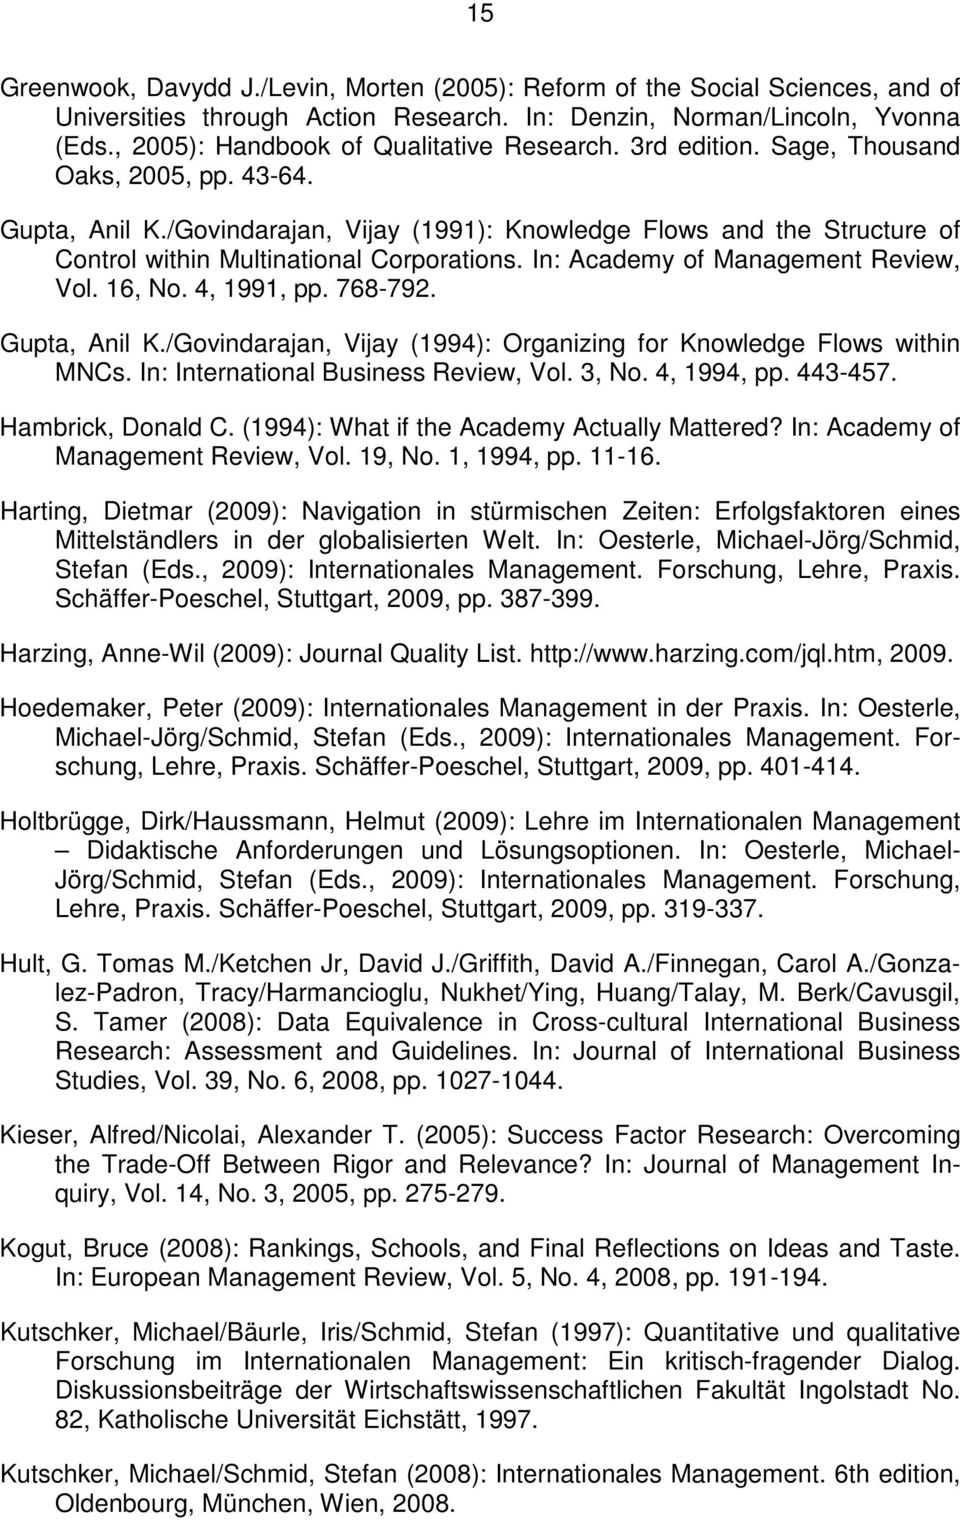 /Govindarajan, Vijay (1991): Knowledge Flows and the Structure of Control within Multinational Corporations. In: Academy of Management Review, Vol. 16, No. 4, 1991, pp. 768-792. Gupta, Anil K.